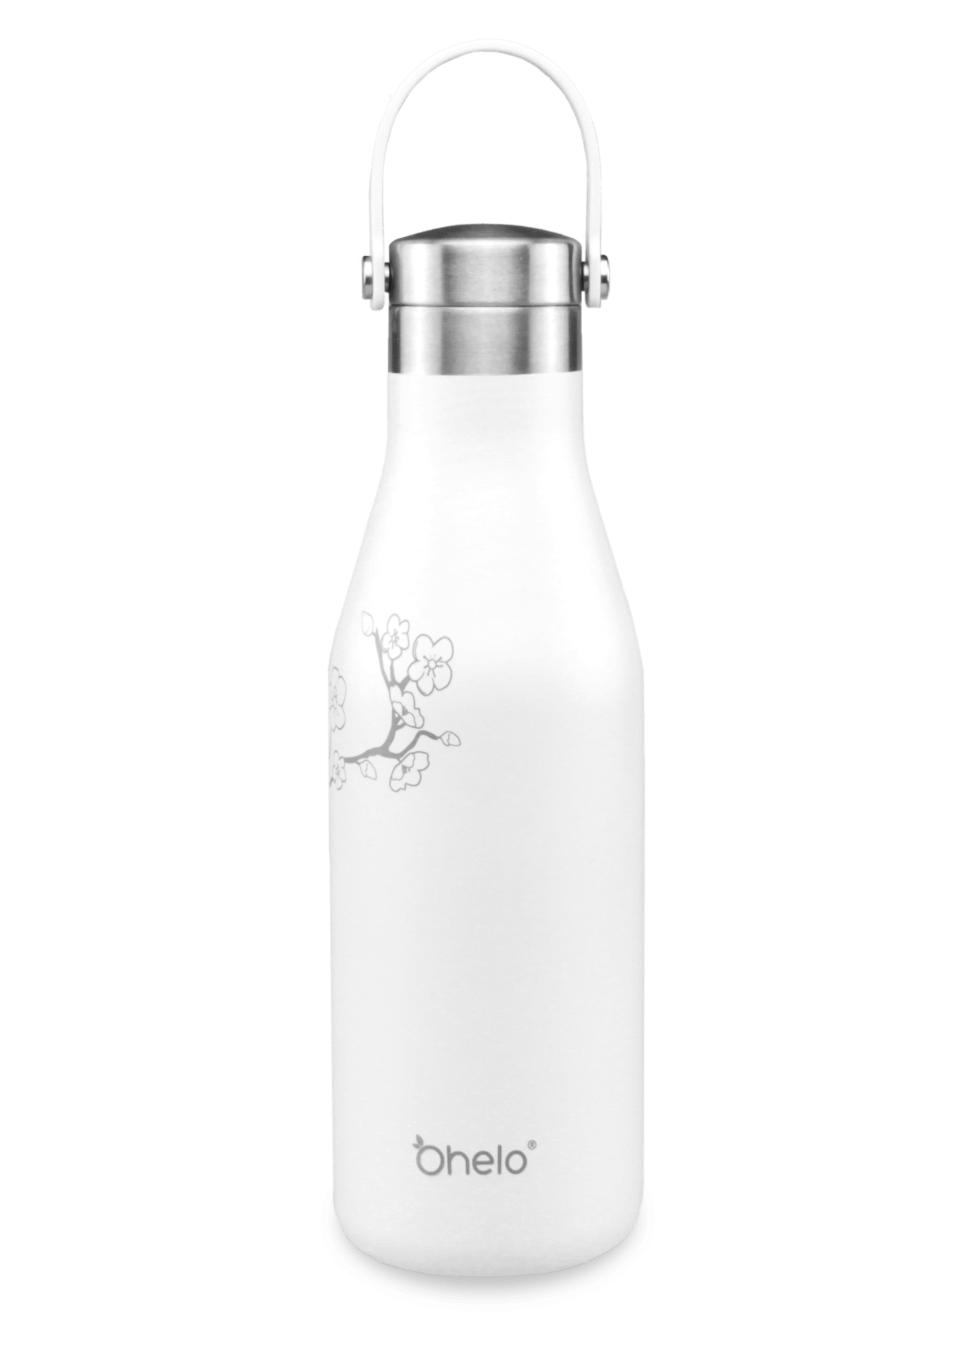 Reusable insulated stainless steel water bottle white with laser etched cherry blossom